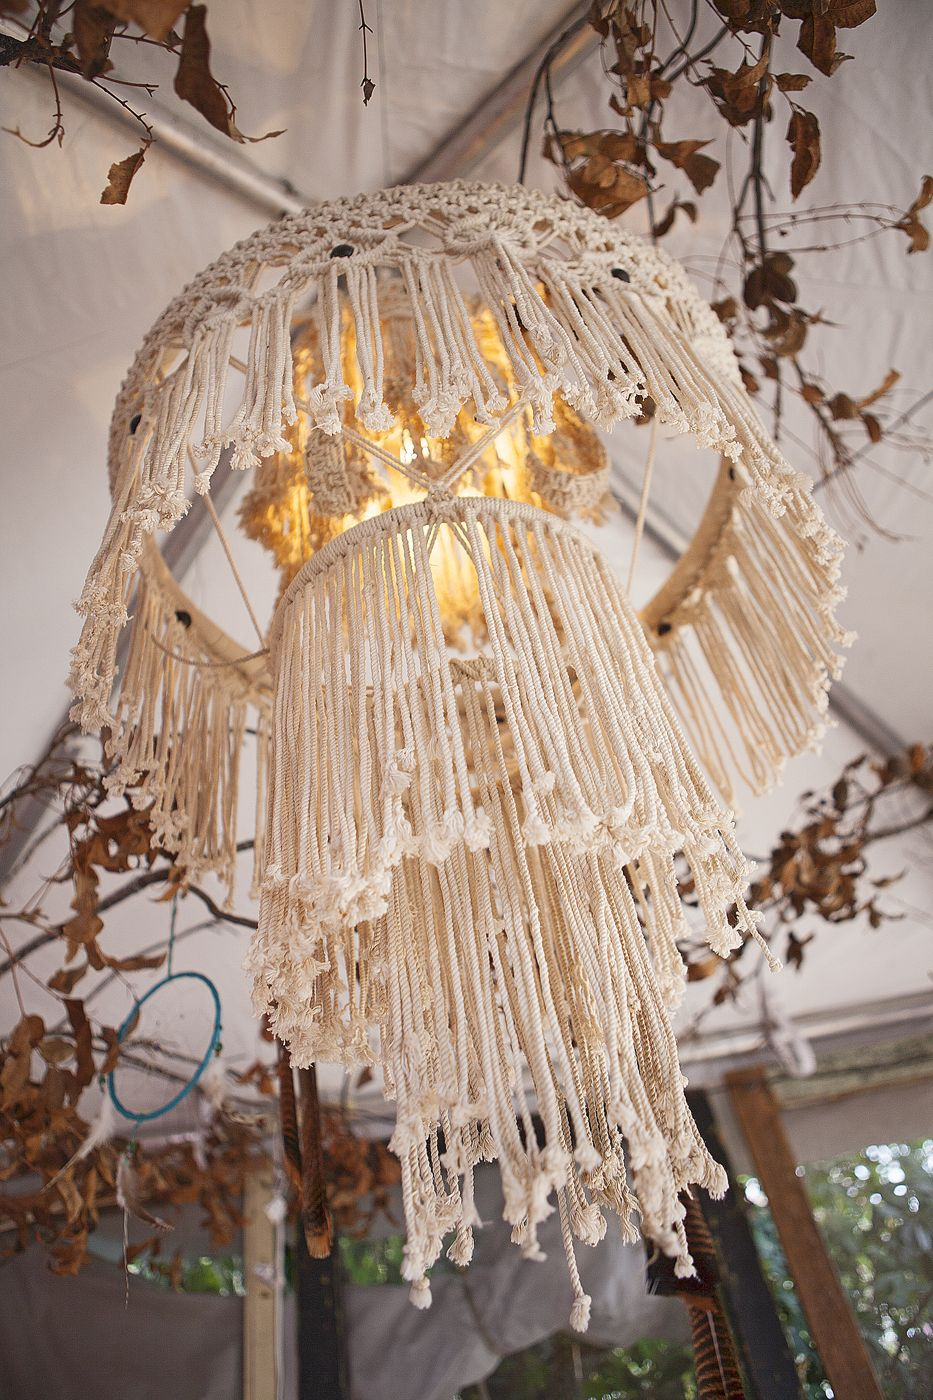 Macrame Hanging Table Turned Into A Chandelier Using A